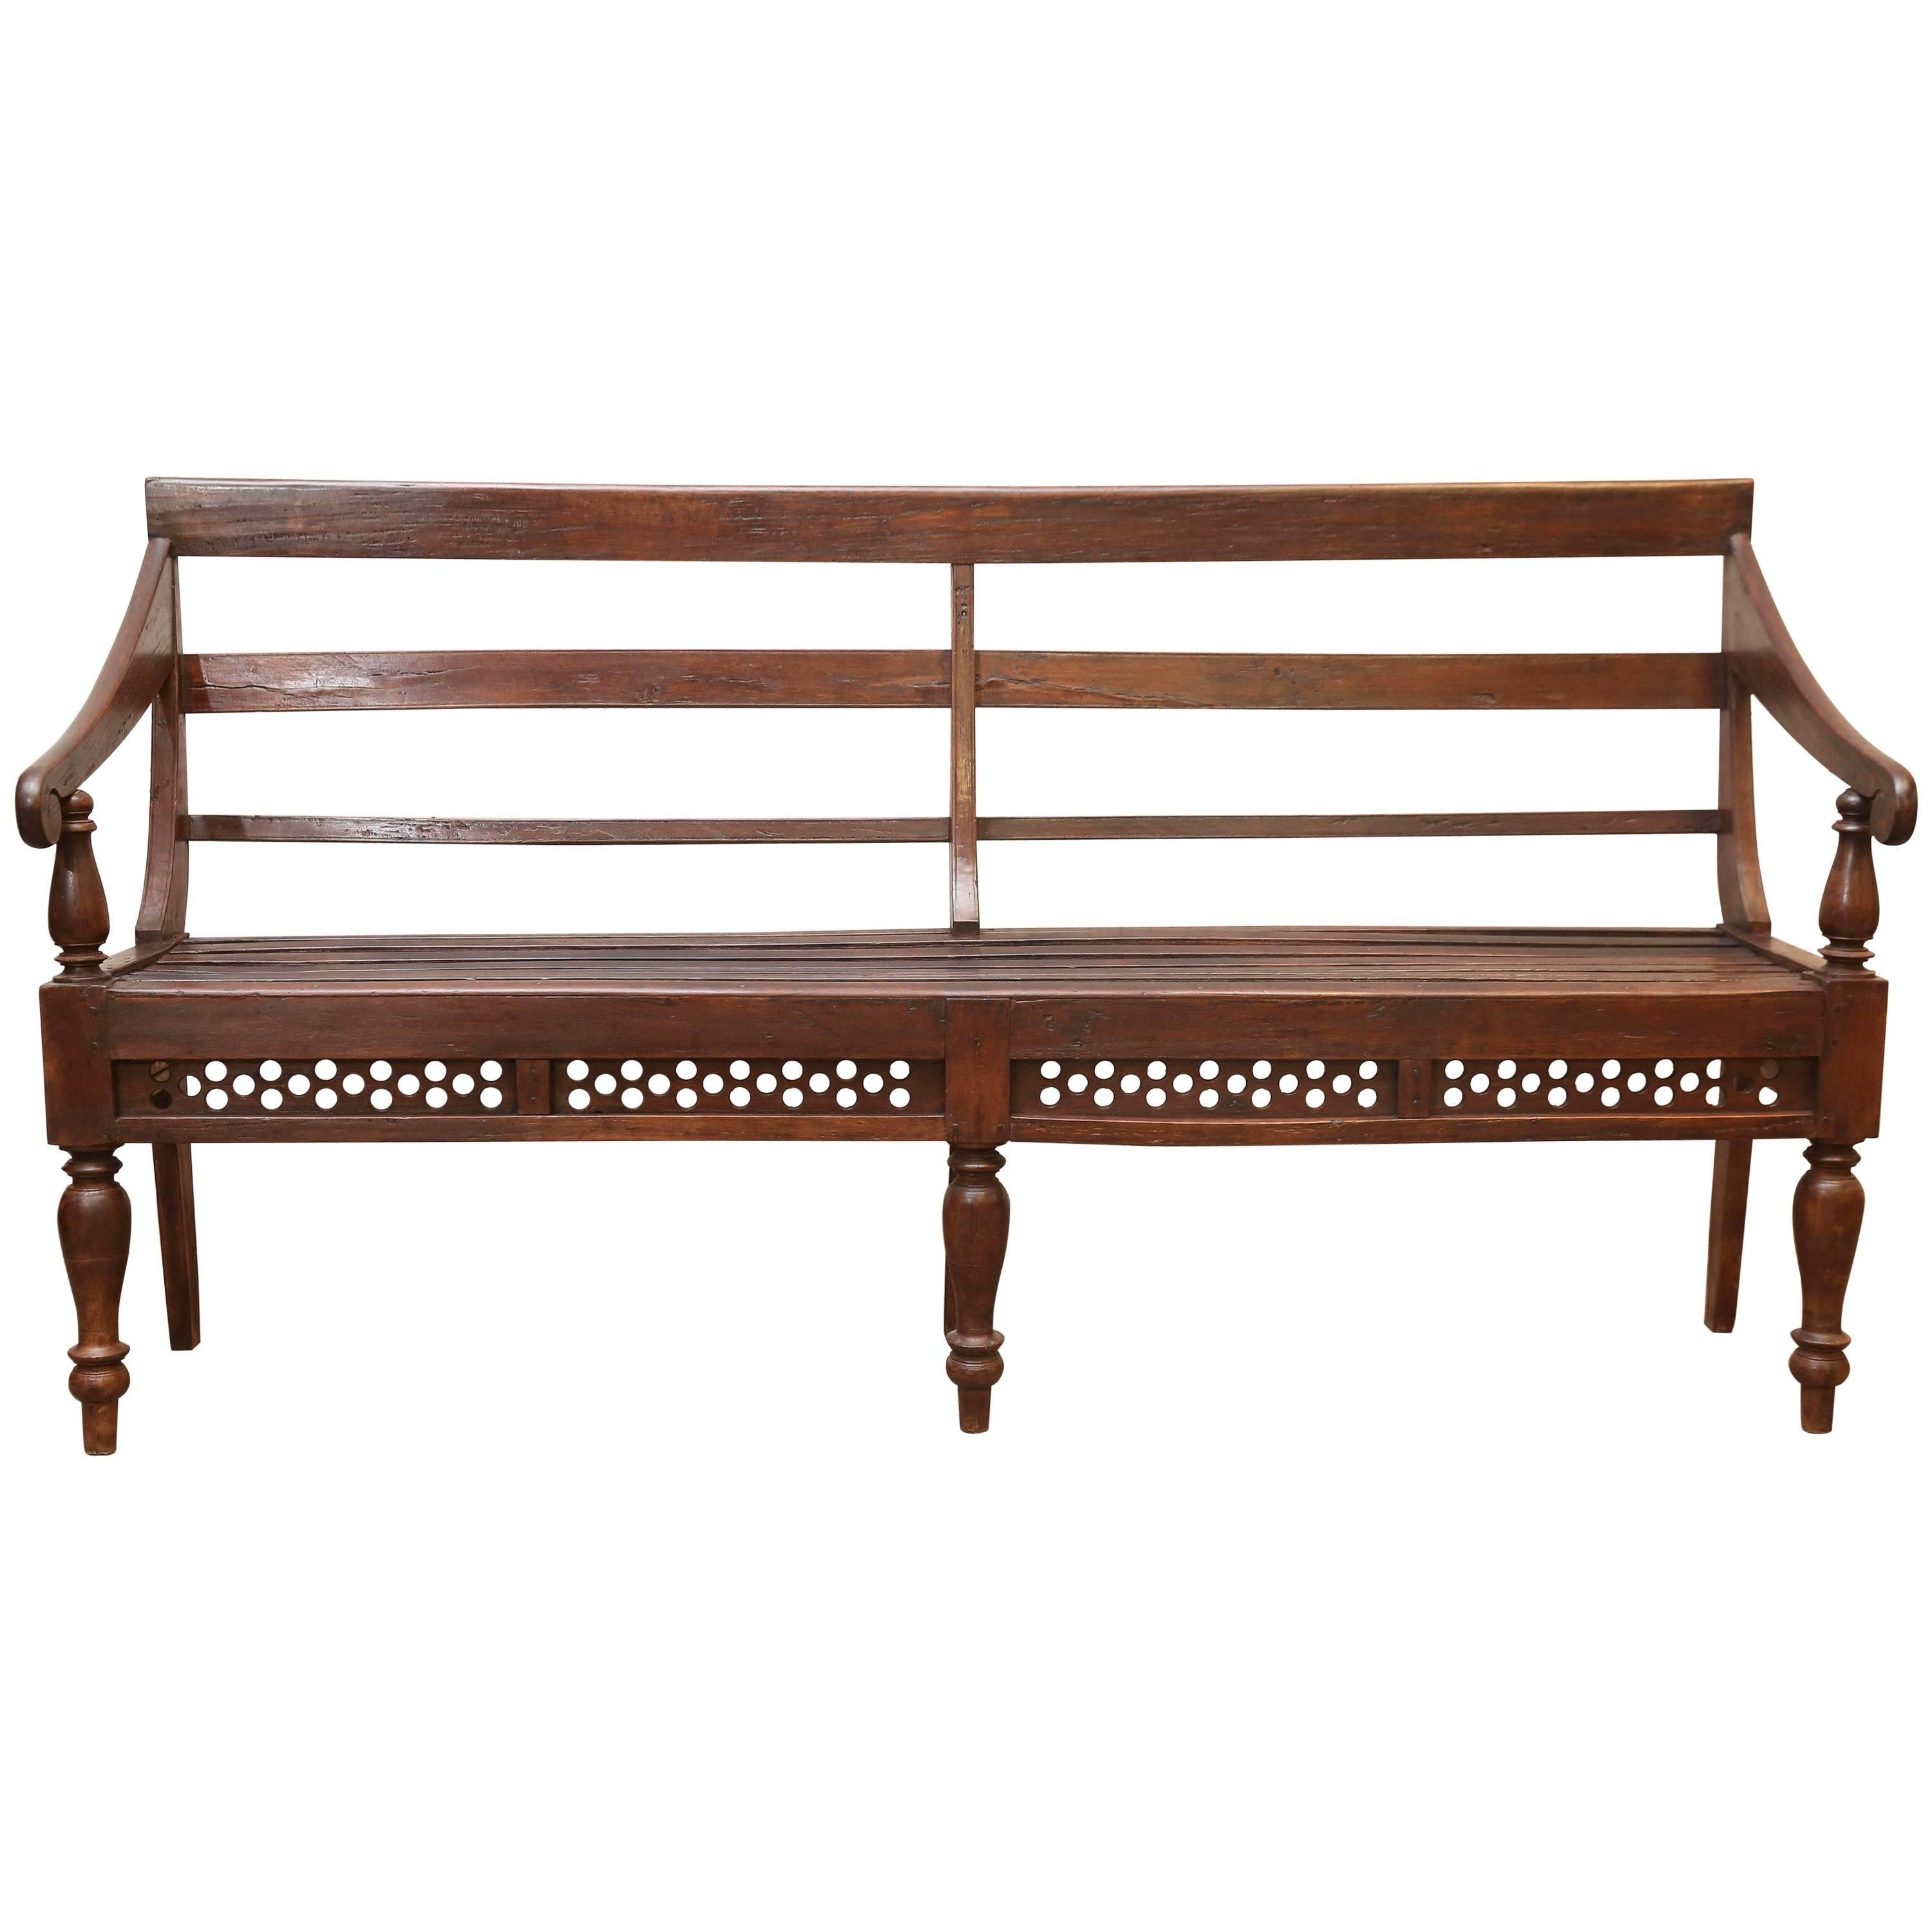 Beau 1910s Solid Teakwood British Colonial Office Bench From A Rail Road Office  For Sale